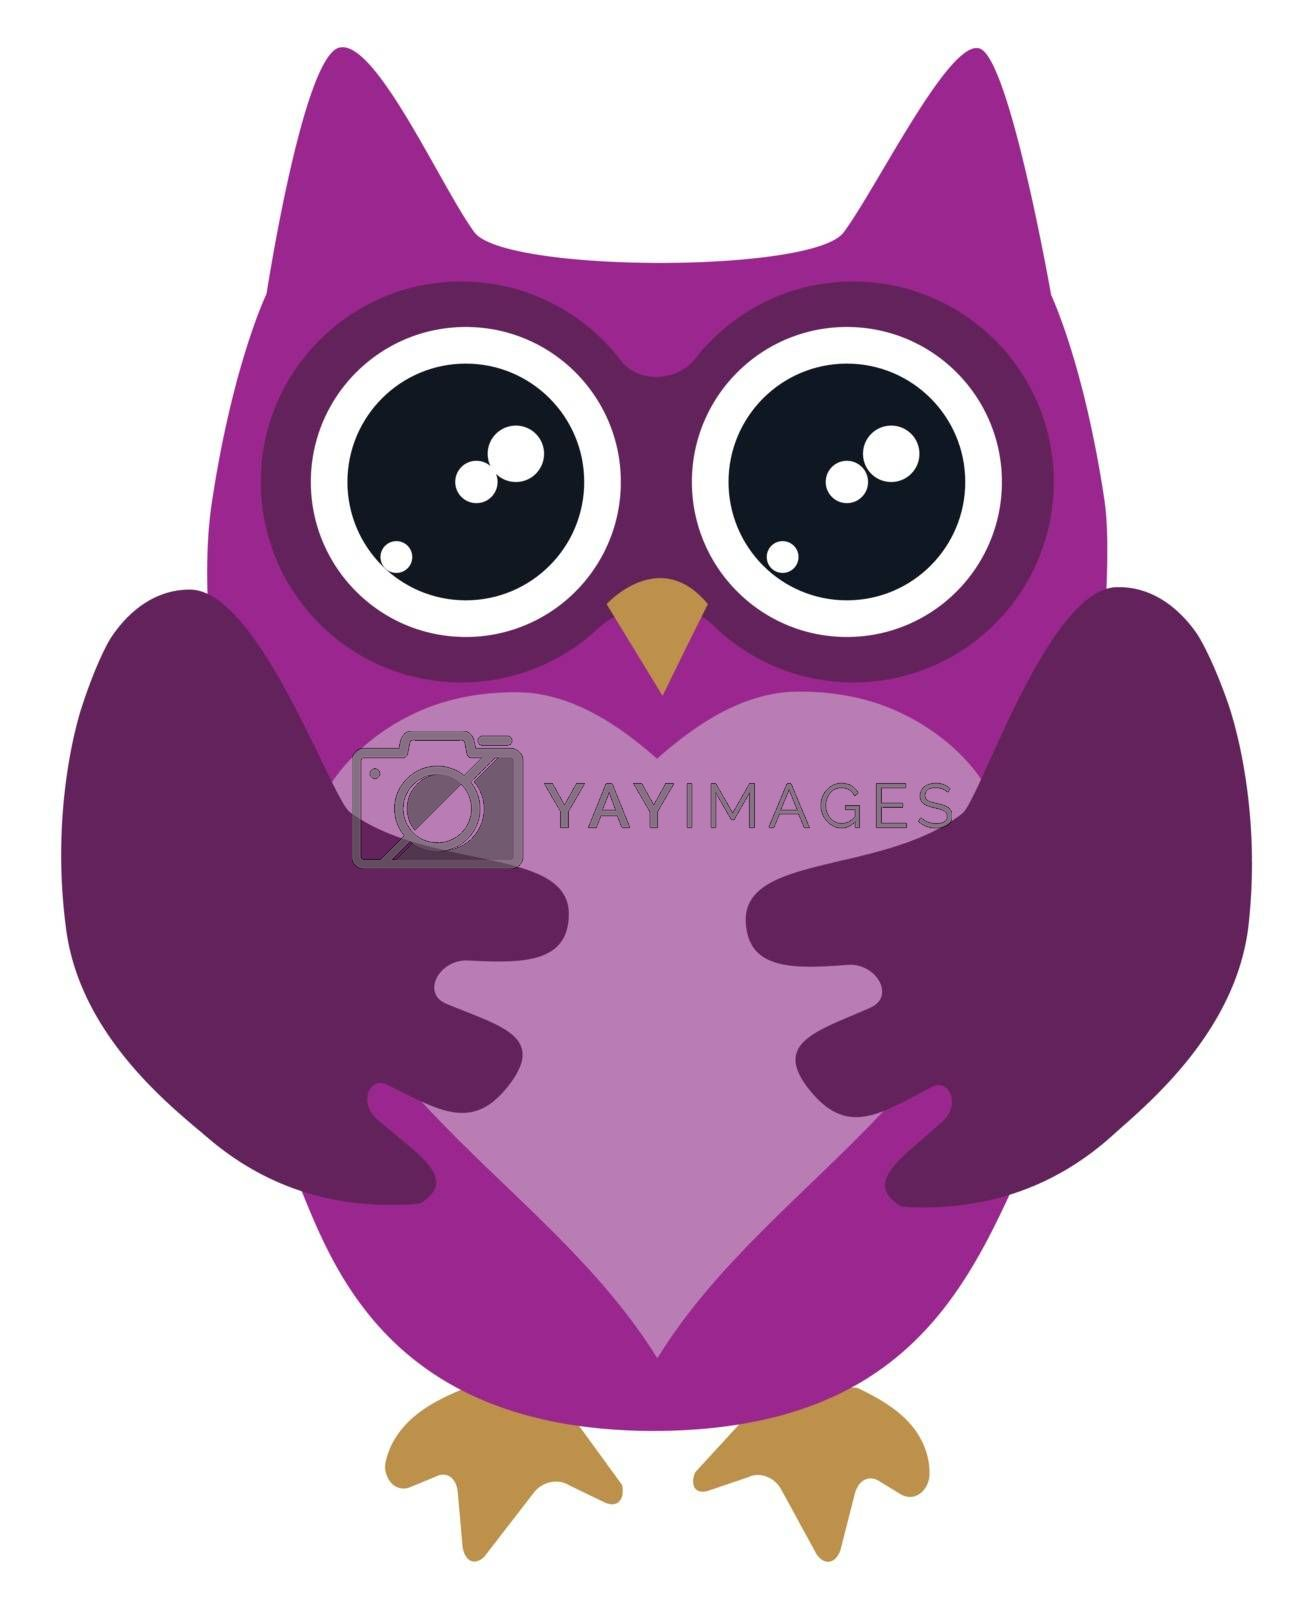 vector illustration of an owl holding a heart